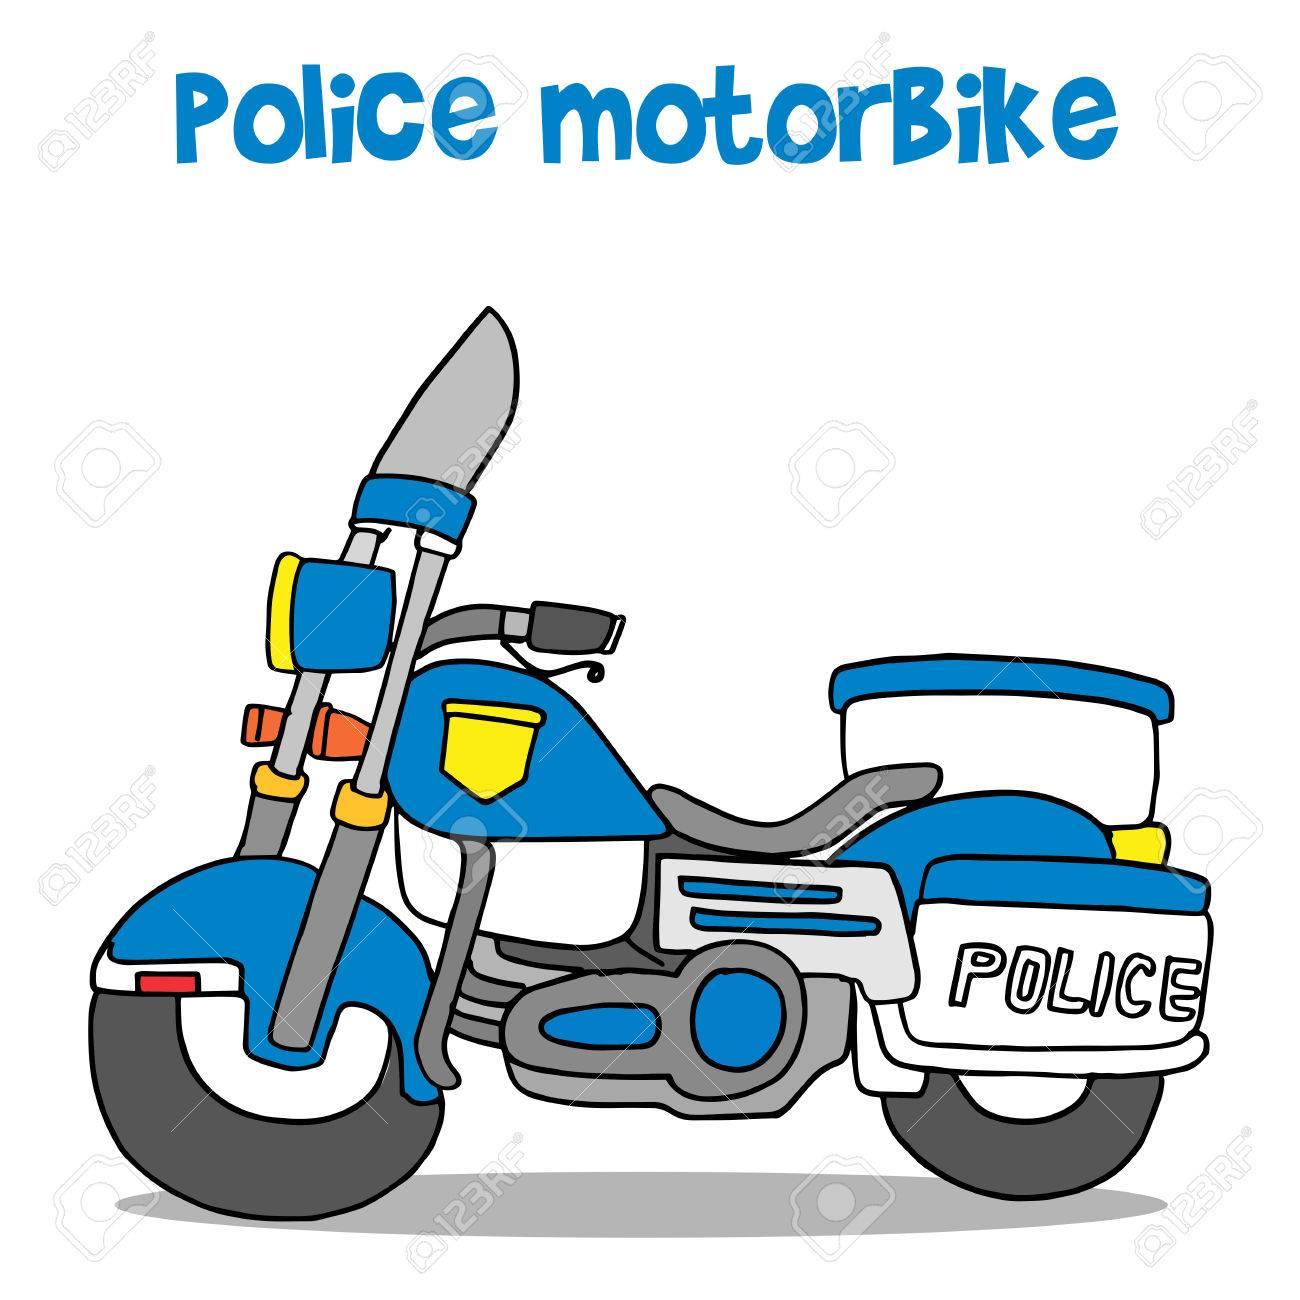 vector illustration of police motor royalty free cliparts, vectors, and  stock illustration. image 70693063.  123rf